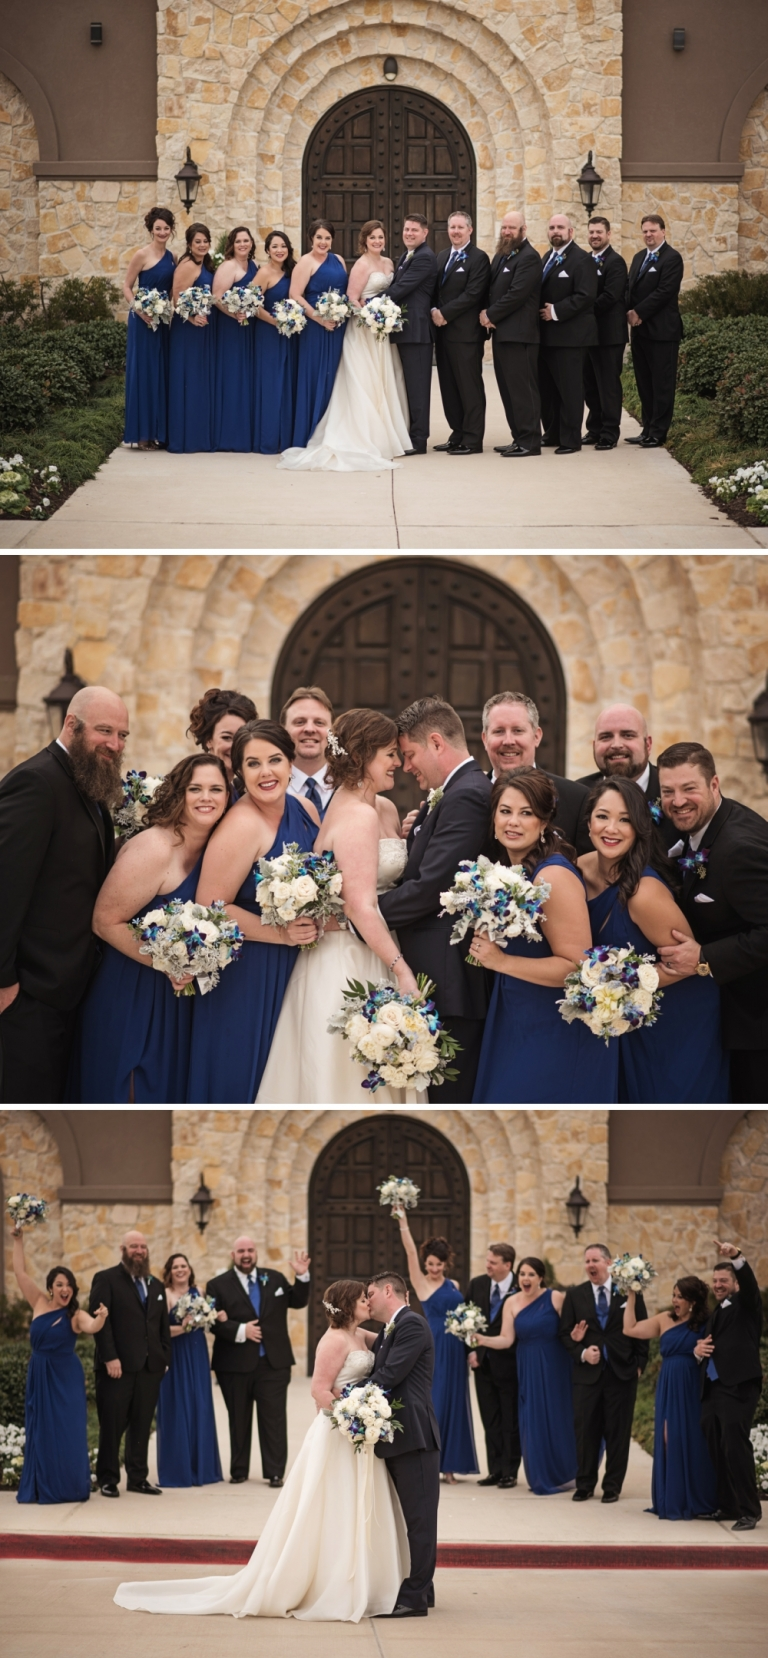 Wedding at the Piazza on the Green in McKinney